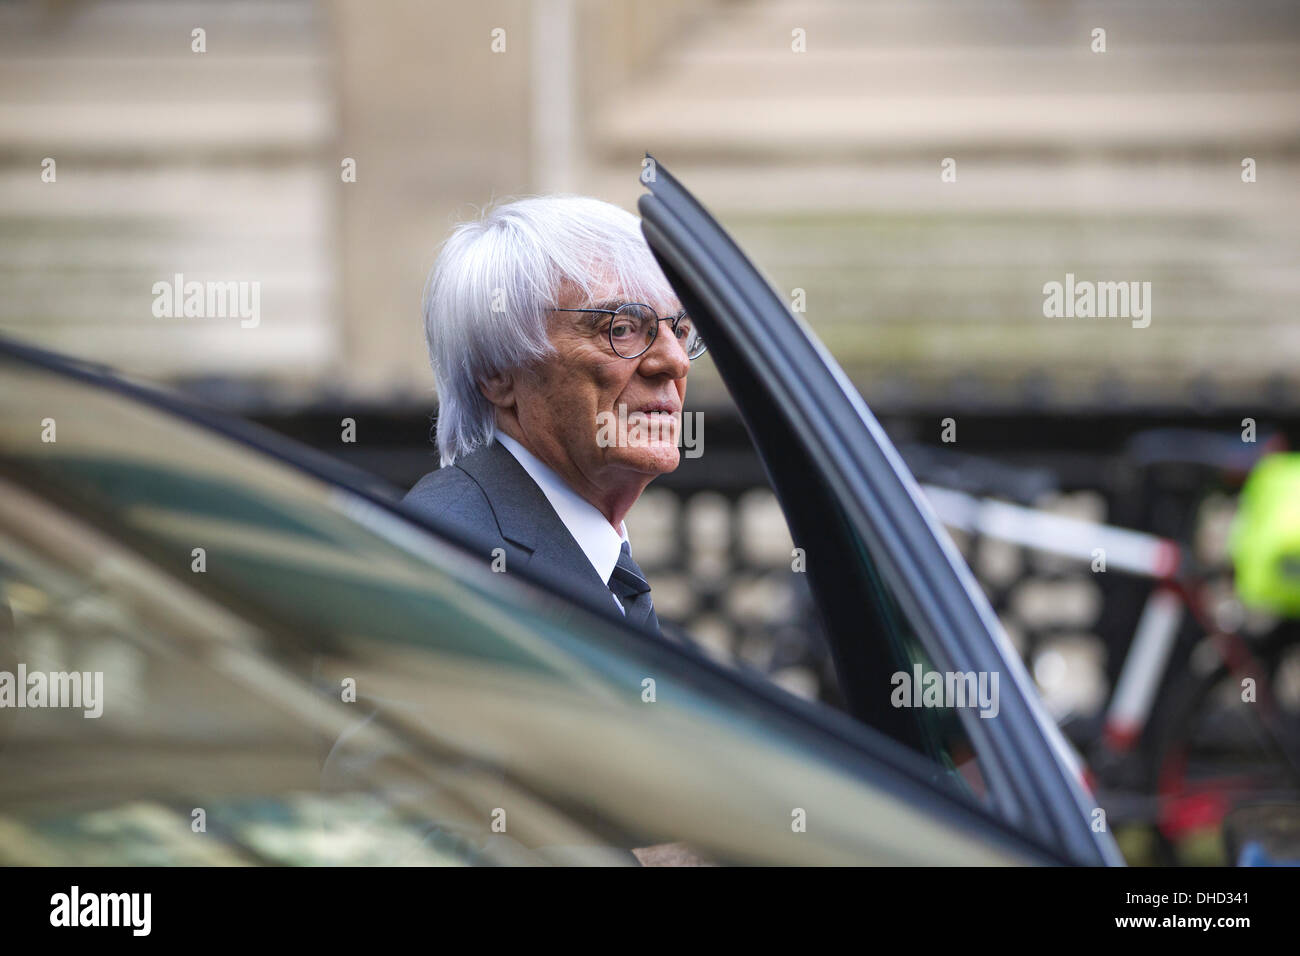 Rolls Building, High Court, London, UK. 7th November 2013. Picture shows Bernie Ecclestone arriving at the Rolls Stock Photo